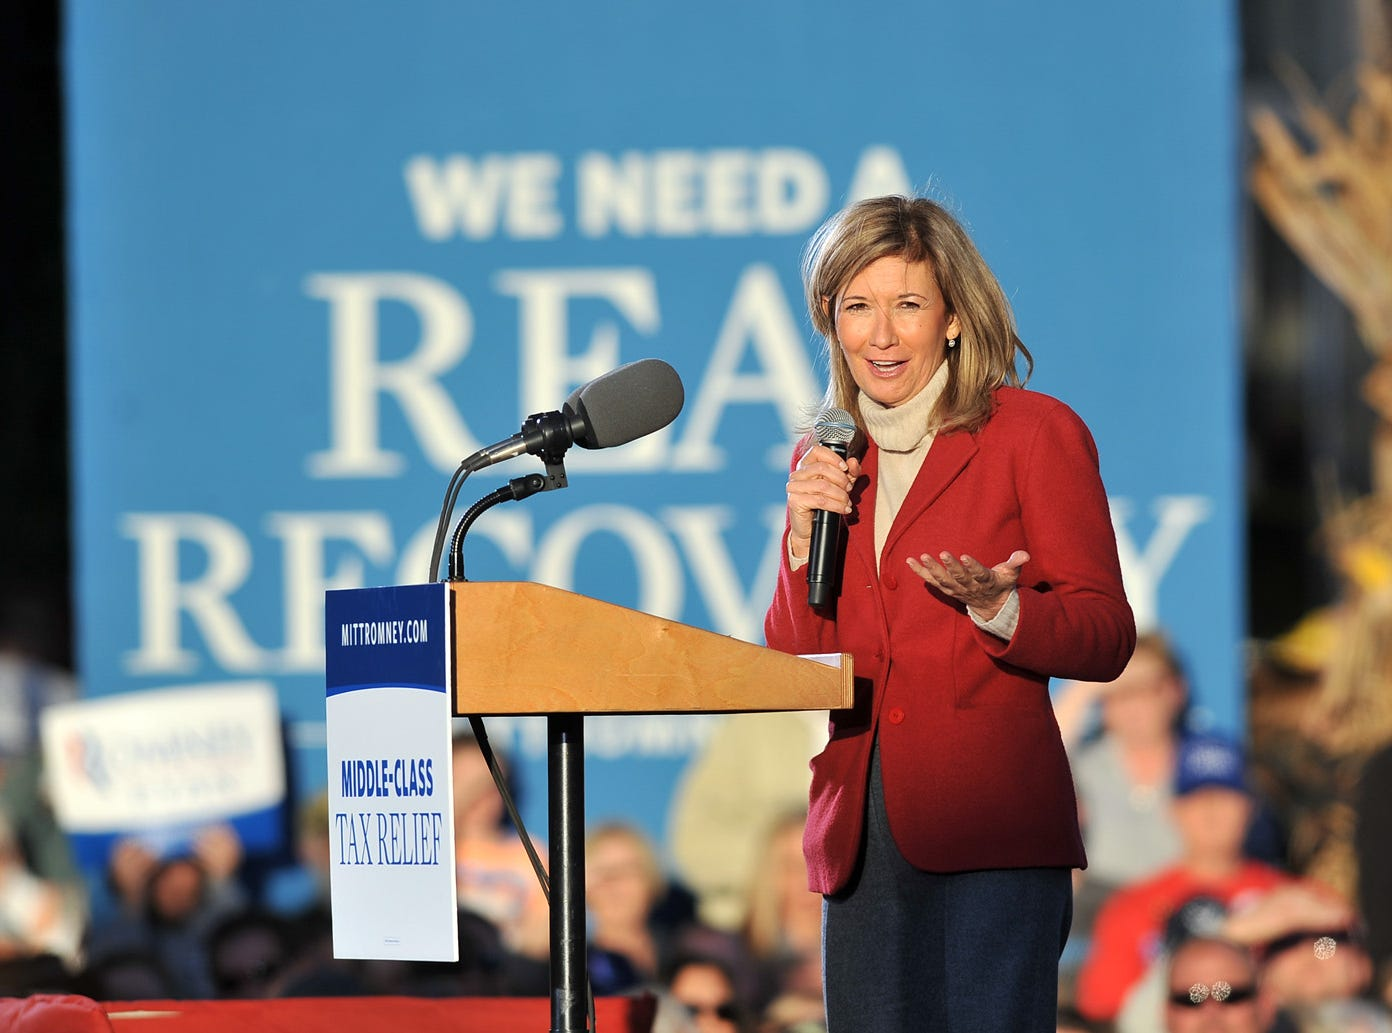 Longaberger Company CEO Tami Longaberger speaks at a campaign rally for Republican presidential candiate Mitt Romney and running mate Paul Ryan Friday night, Oct. 12, 2012, in downtown Lancaster.